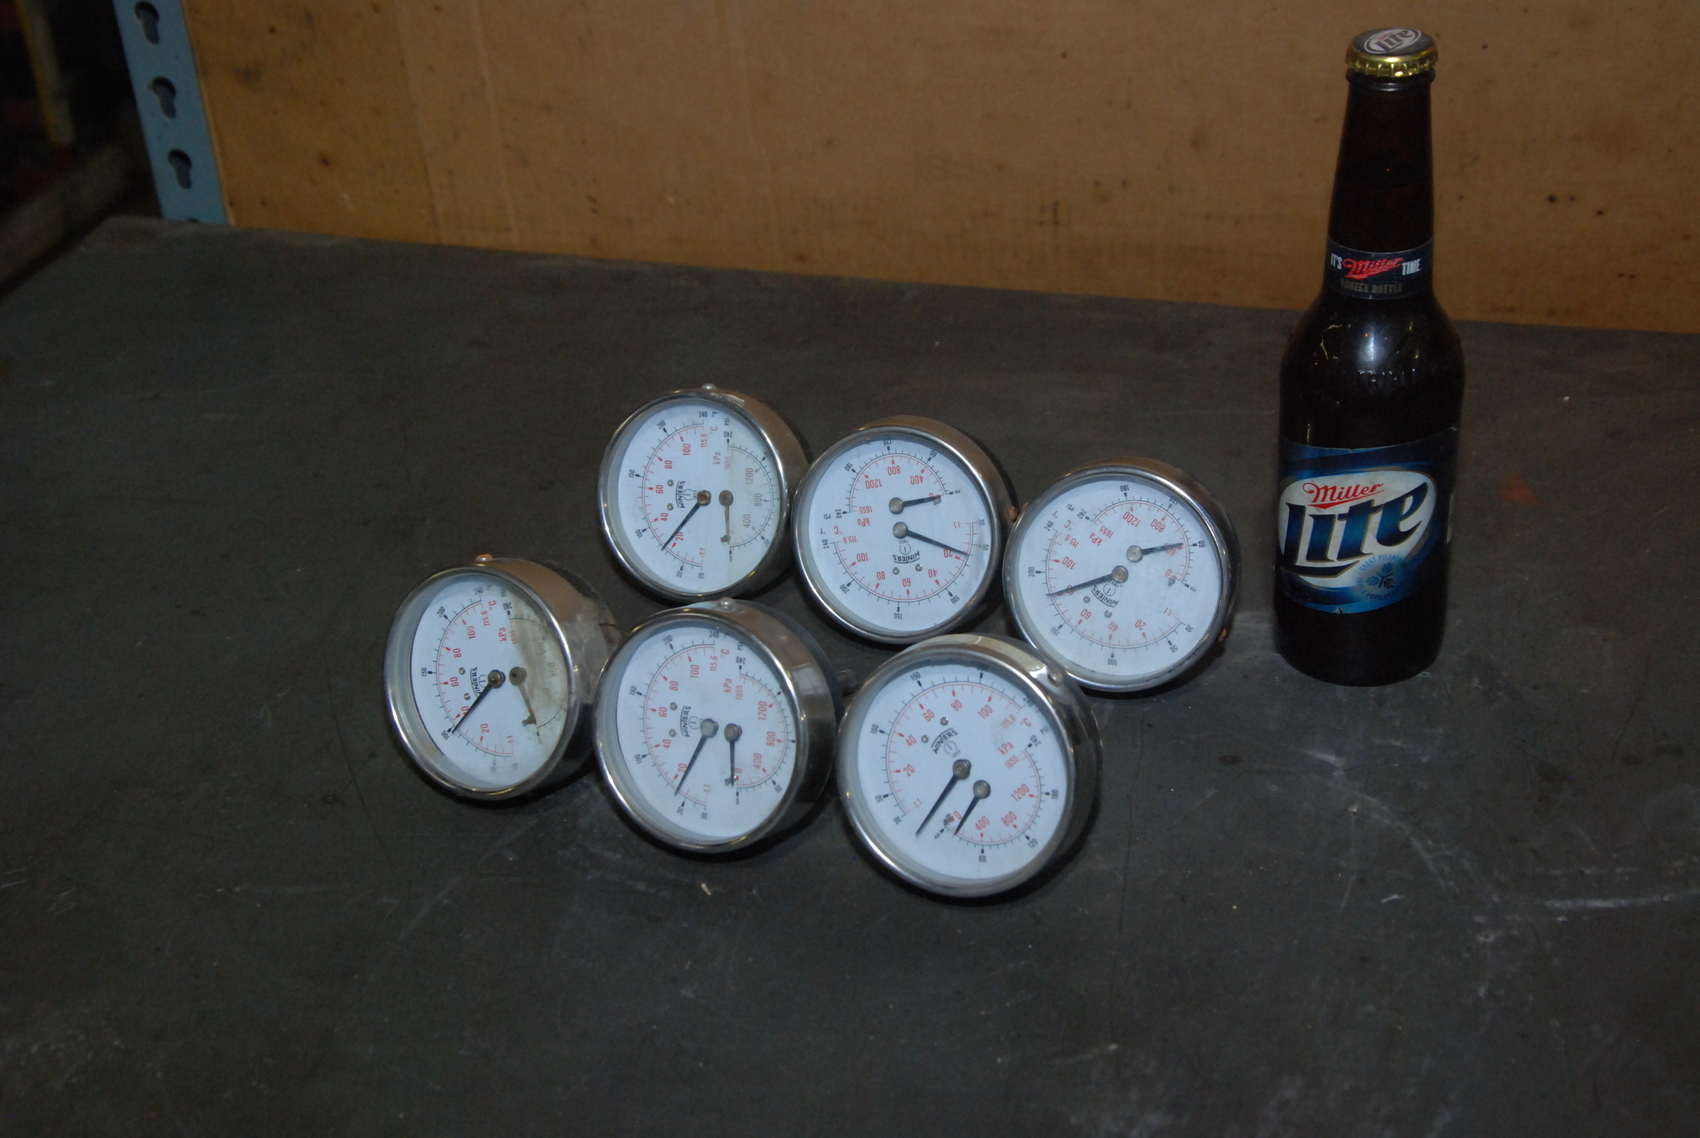 Lot of 7 Winters Instruments Pressure System Tridicator gauge